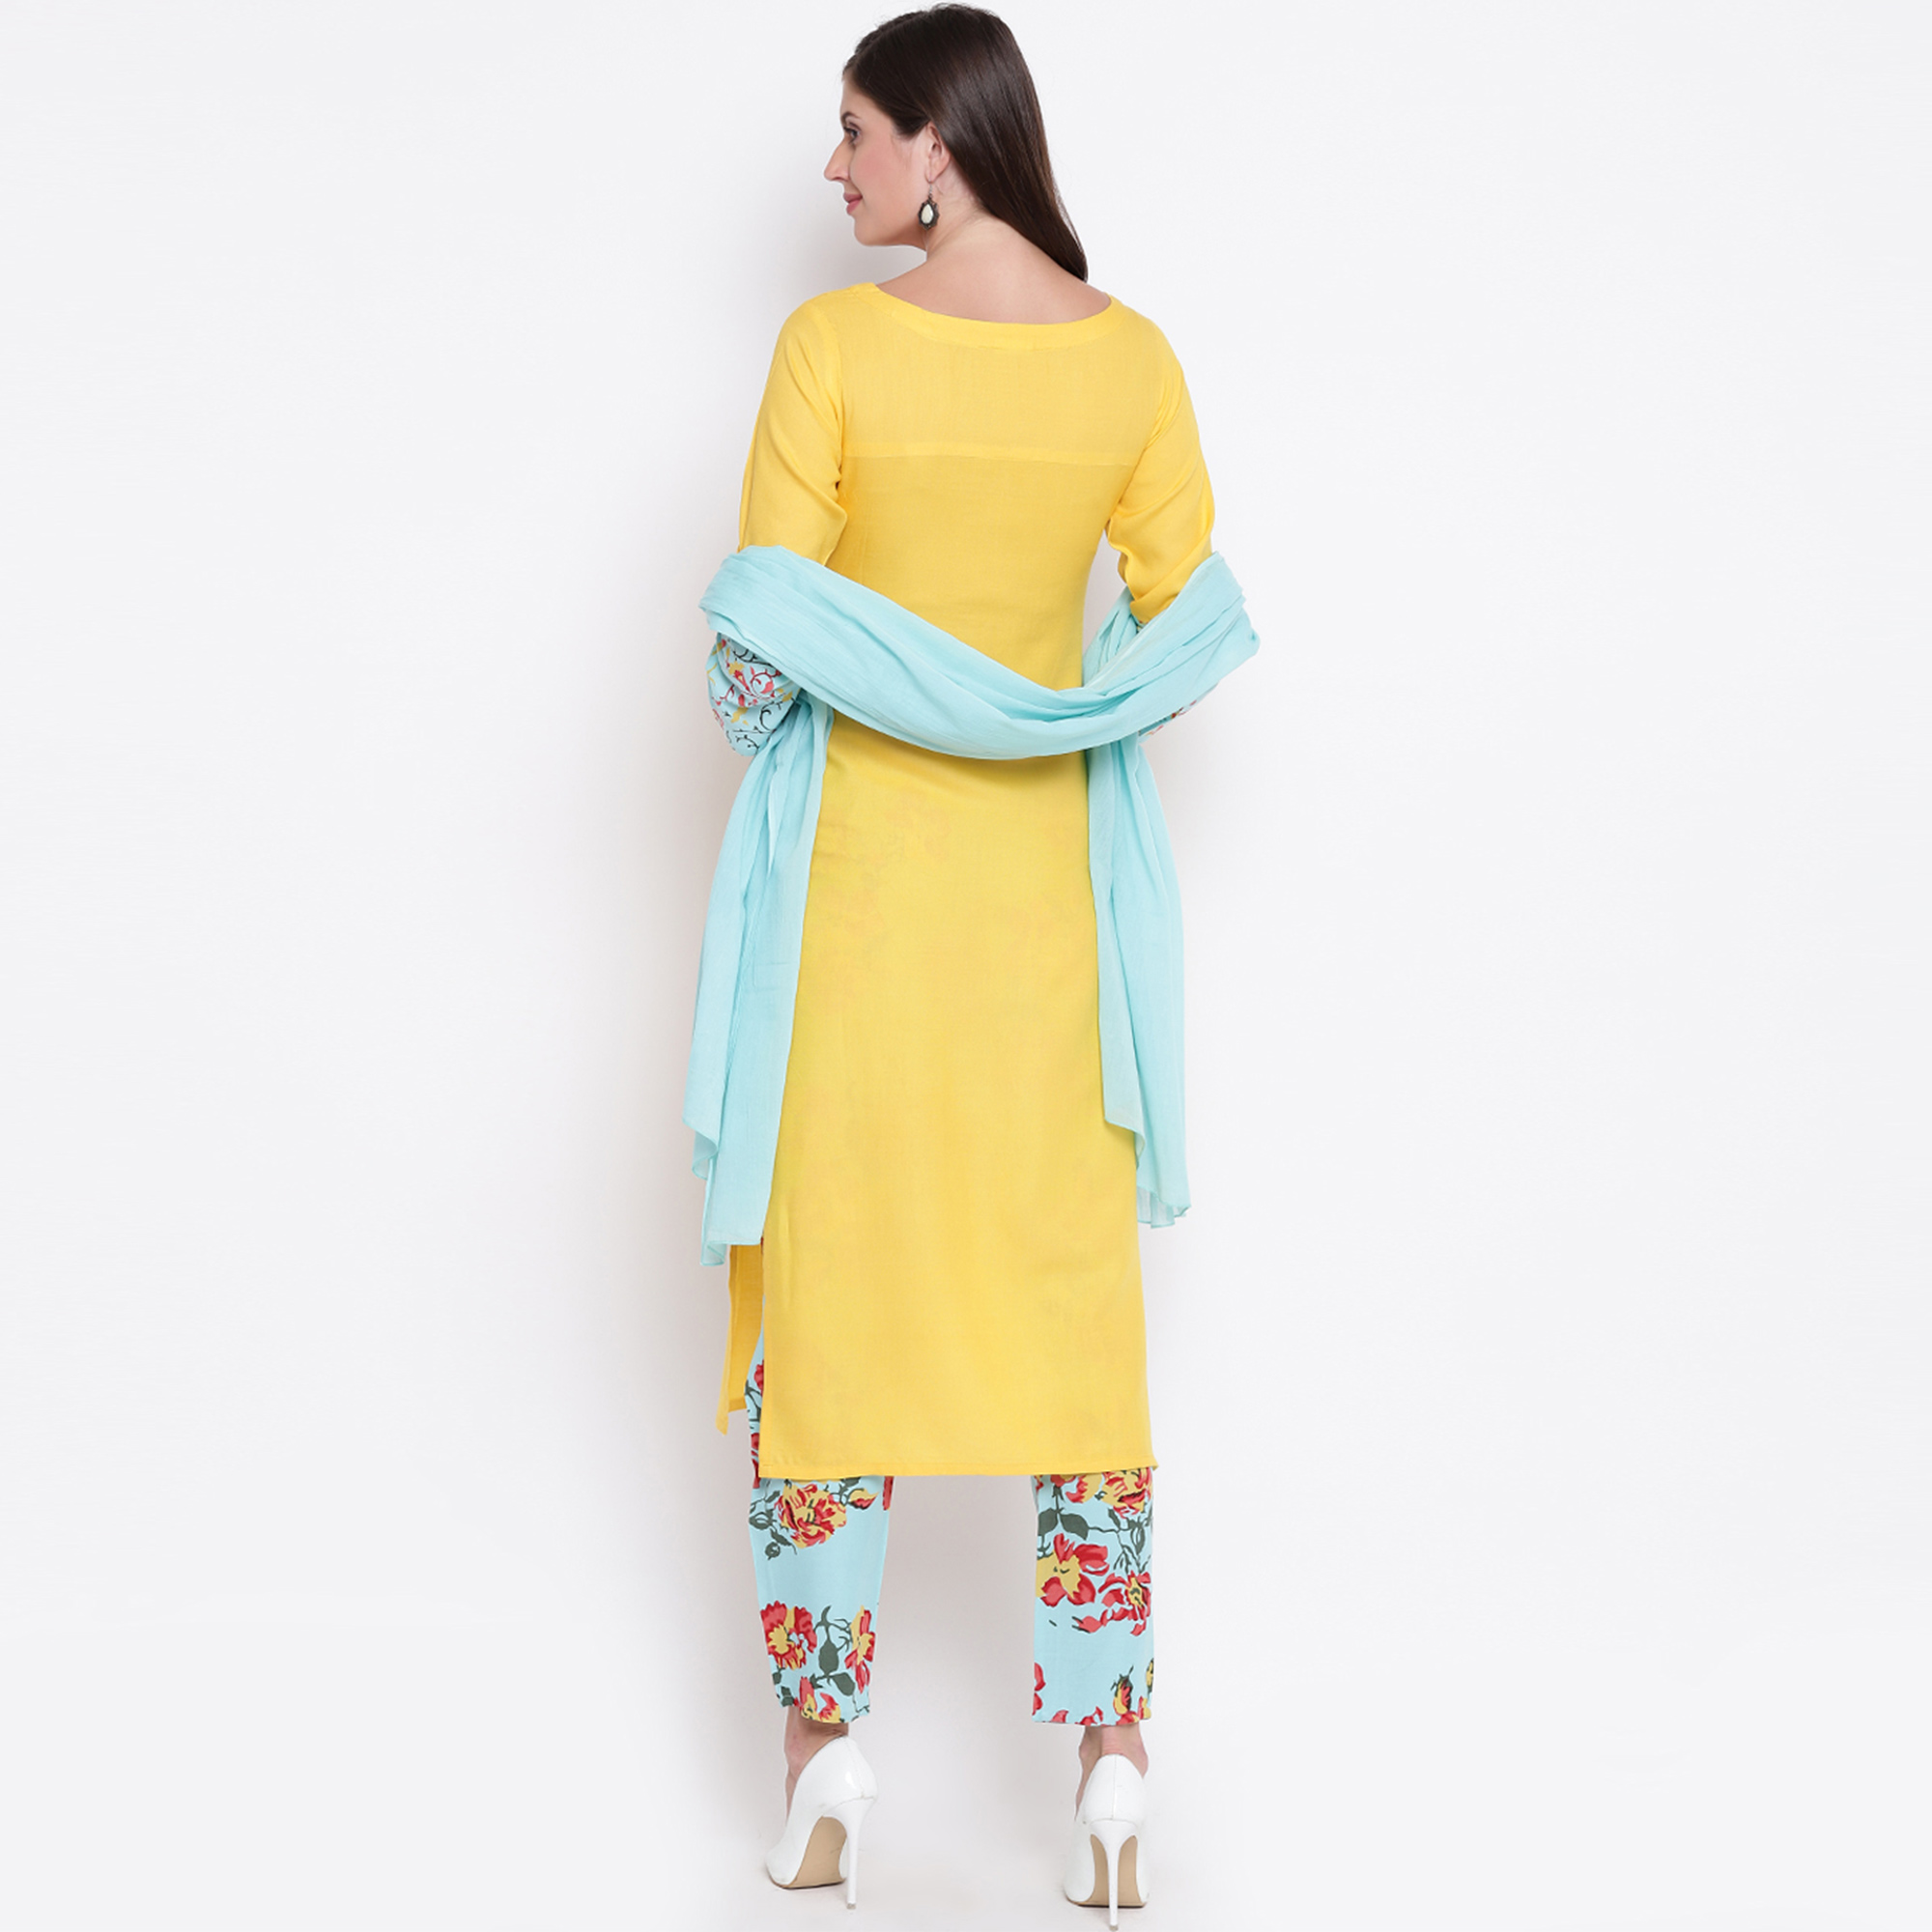 Mesmerising Yellow Colored Casual Wear Rayon Kurti-Bottom Set With Dupatta